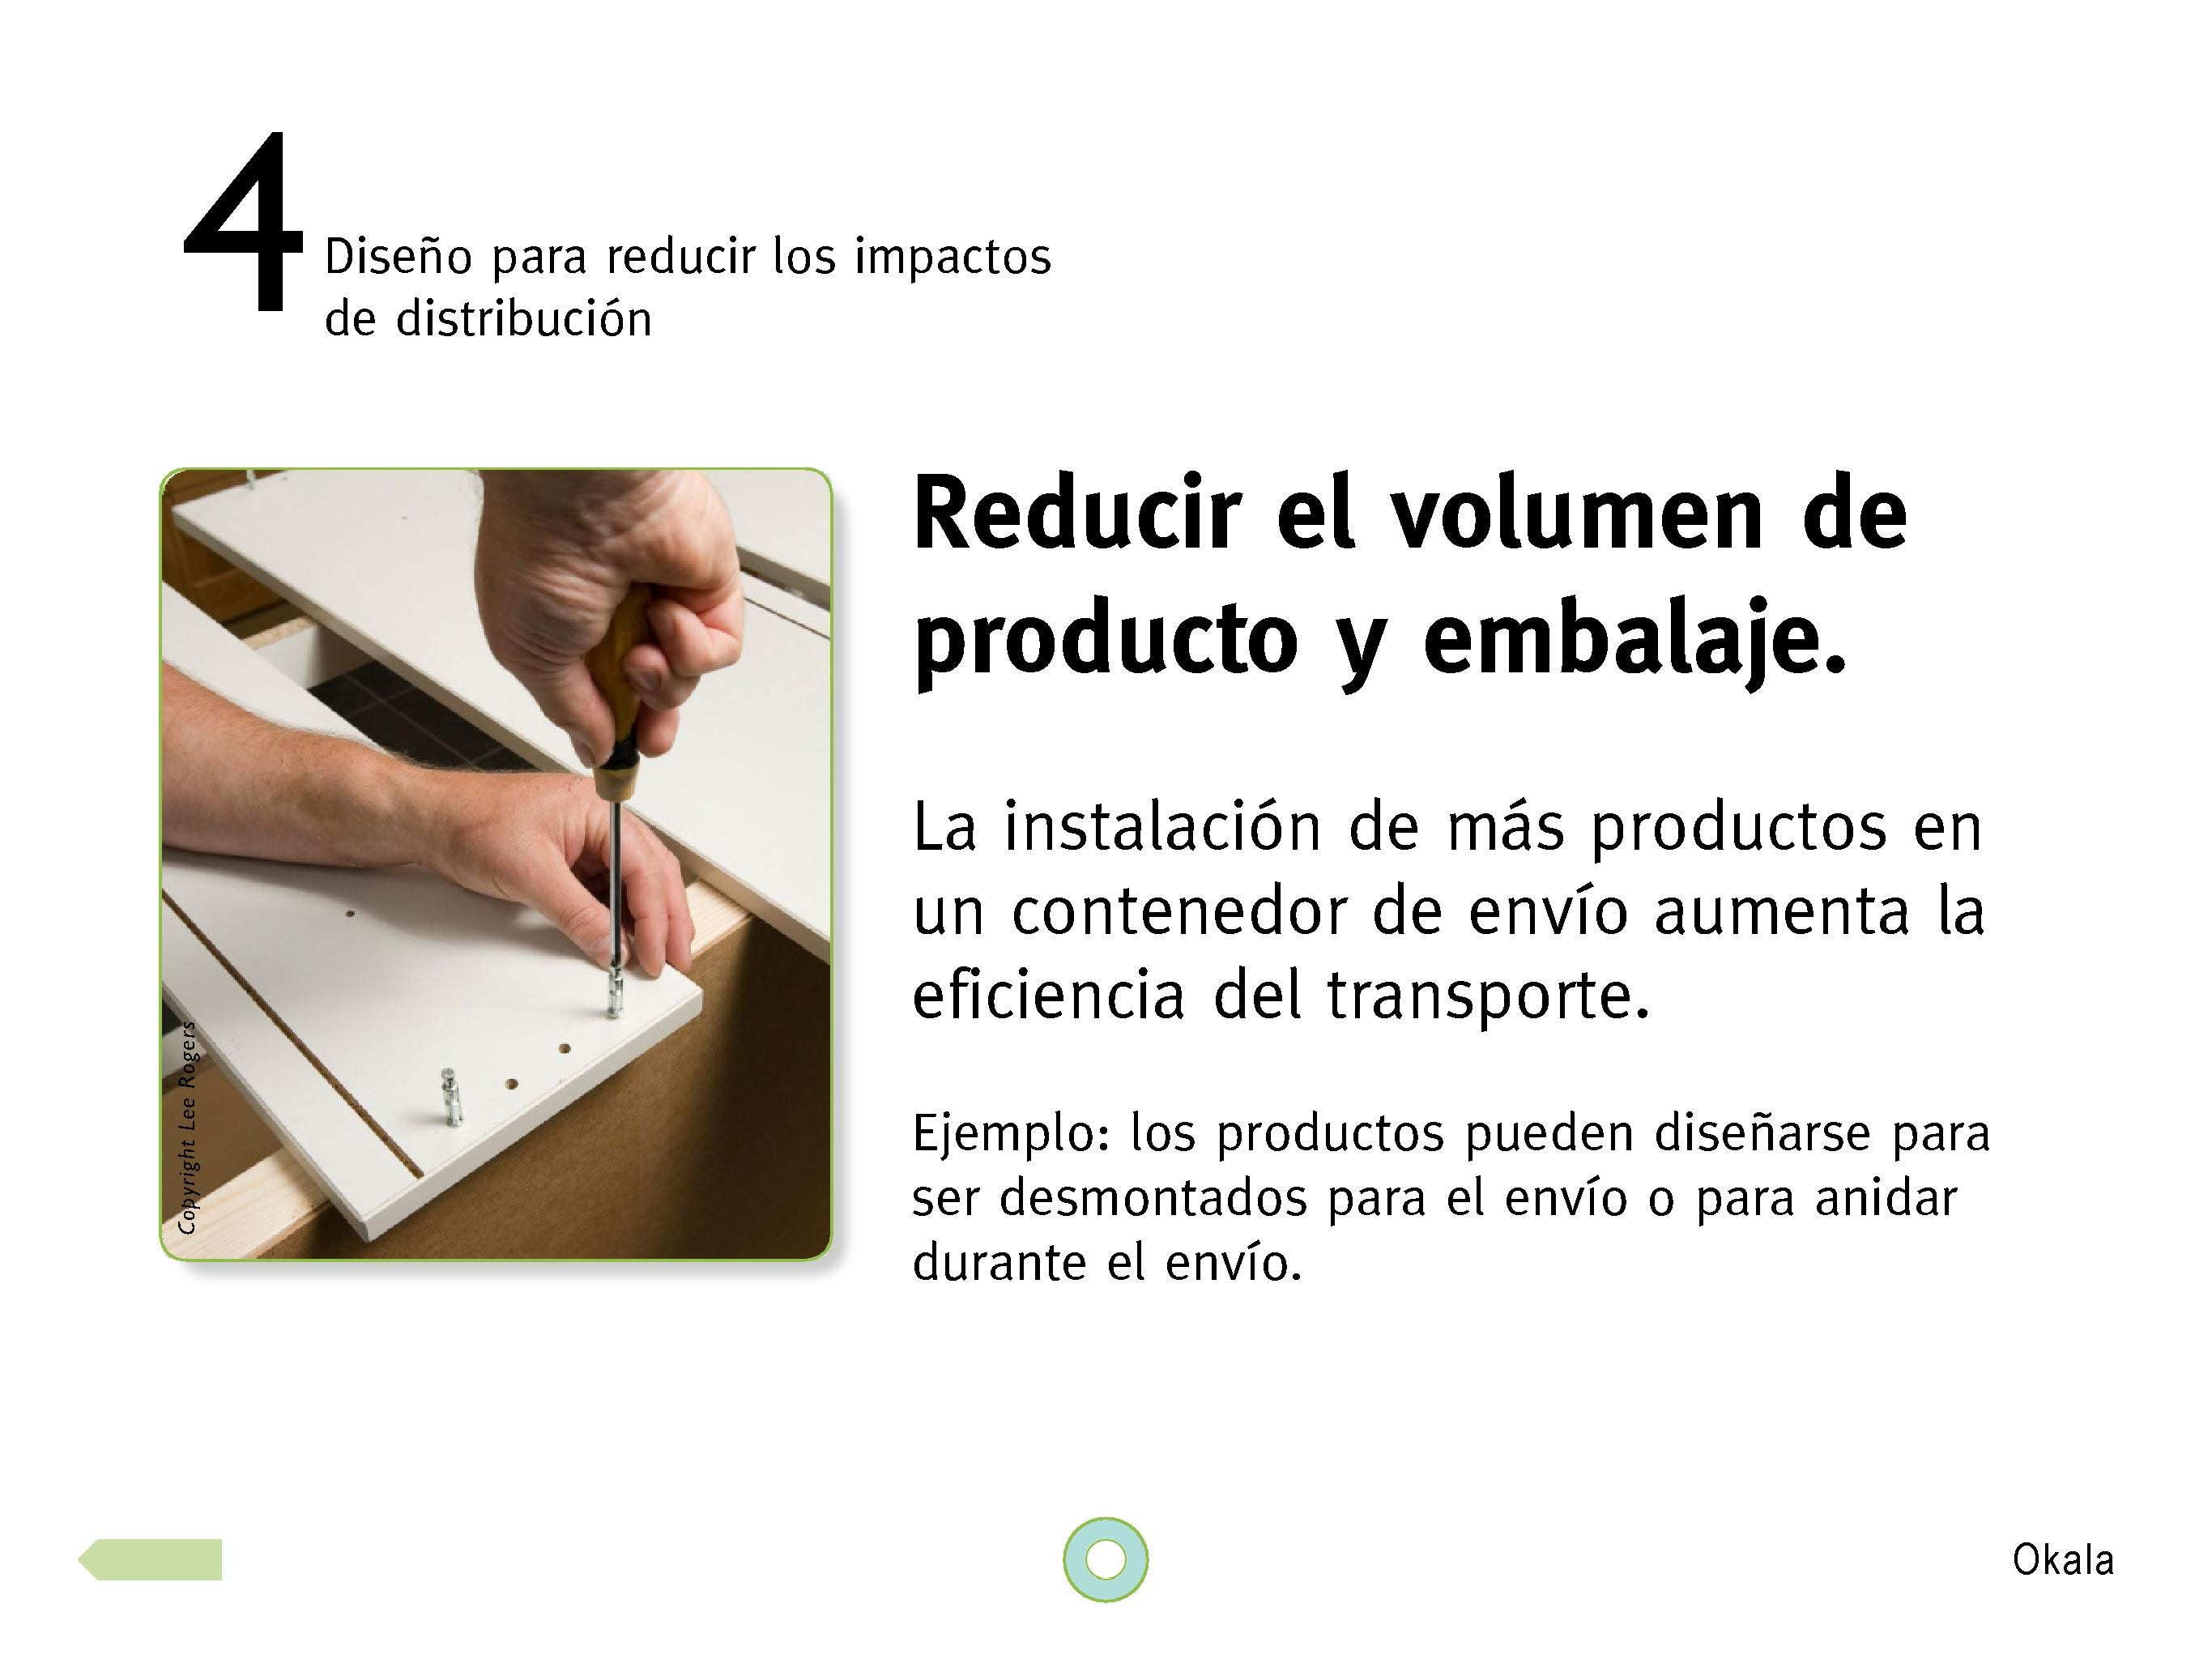 okala-ecodesign-strategy-guide-2012-spanish.new_page_23-1